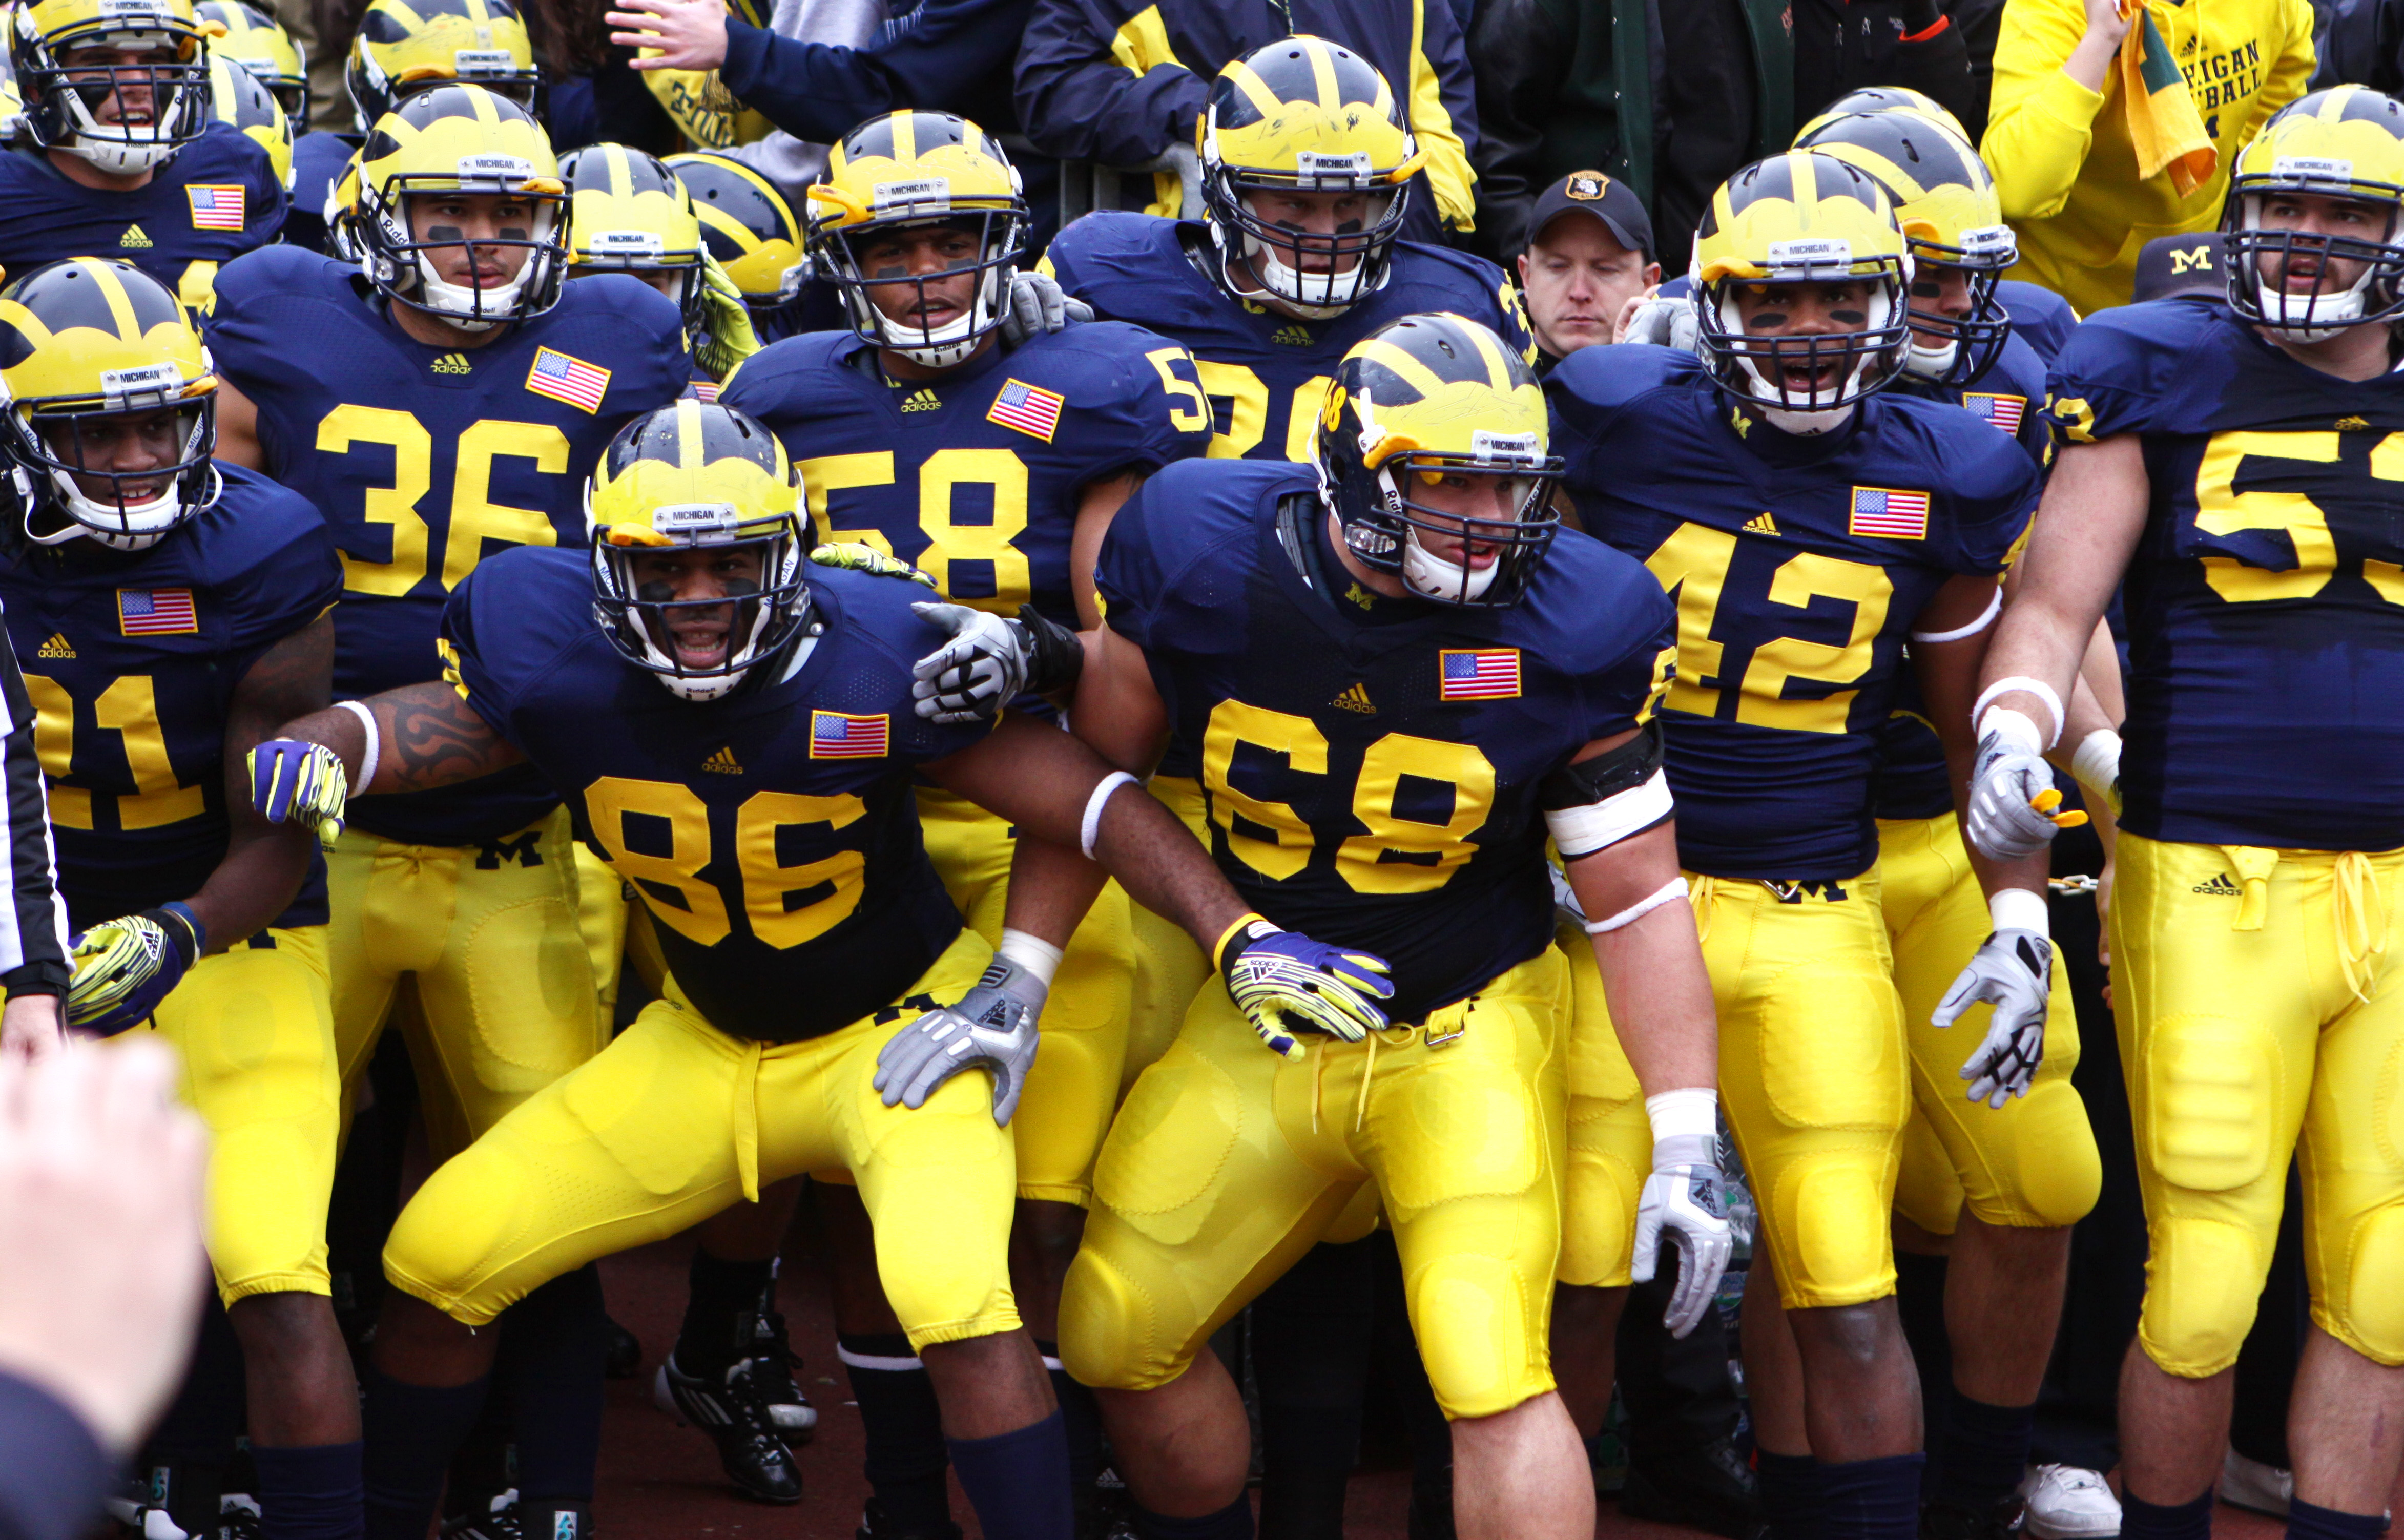 Favorite uniforms of your team cfb for M go fish